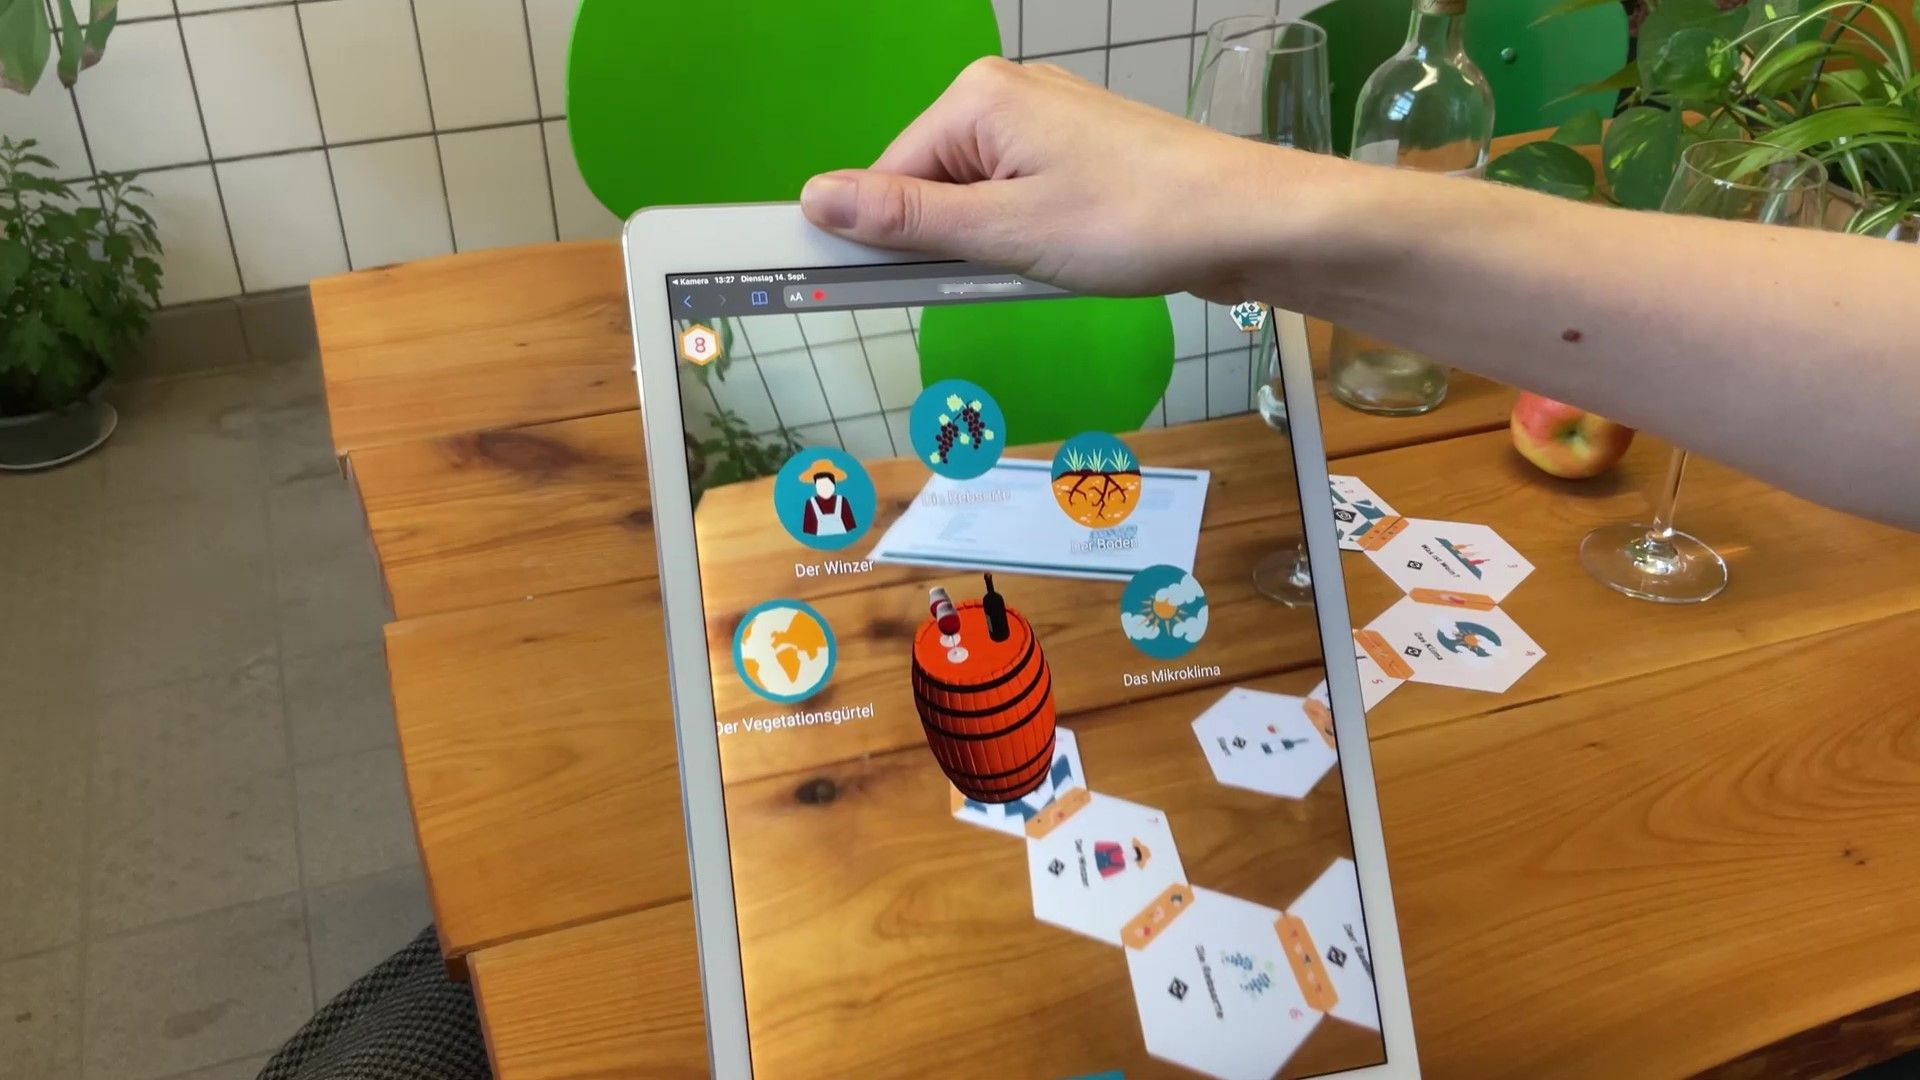 An ipad is hold over a gard game and shows 3D elements popping out of the cards. You can see a wine barrel with several interactive elements around it.